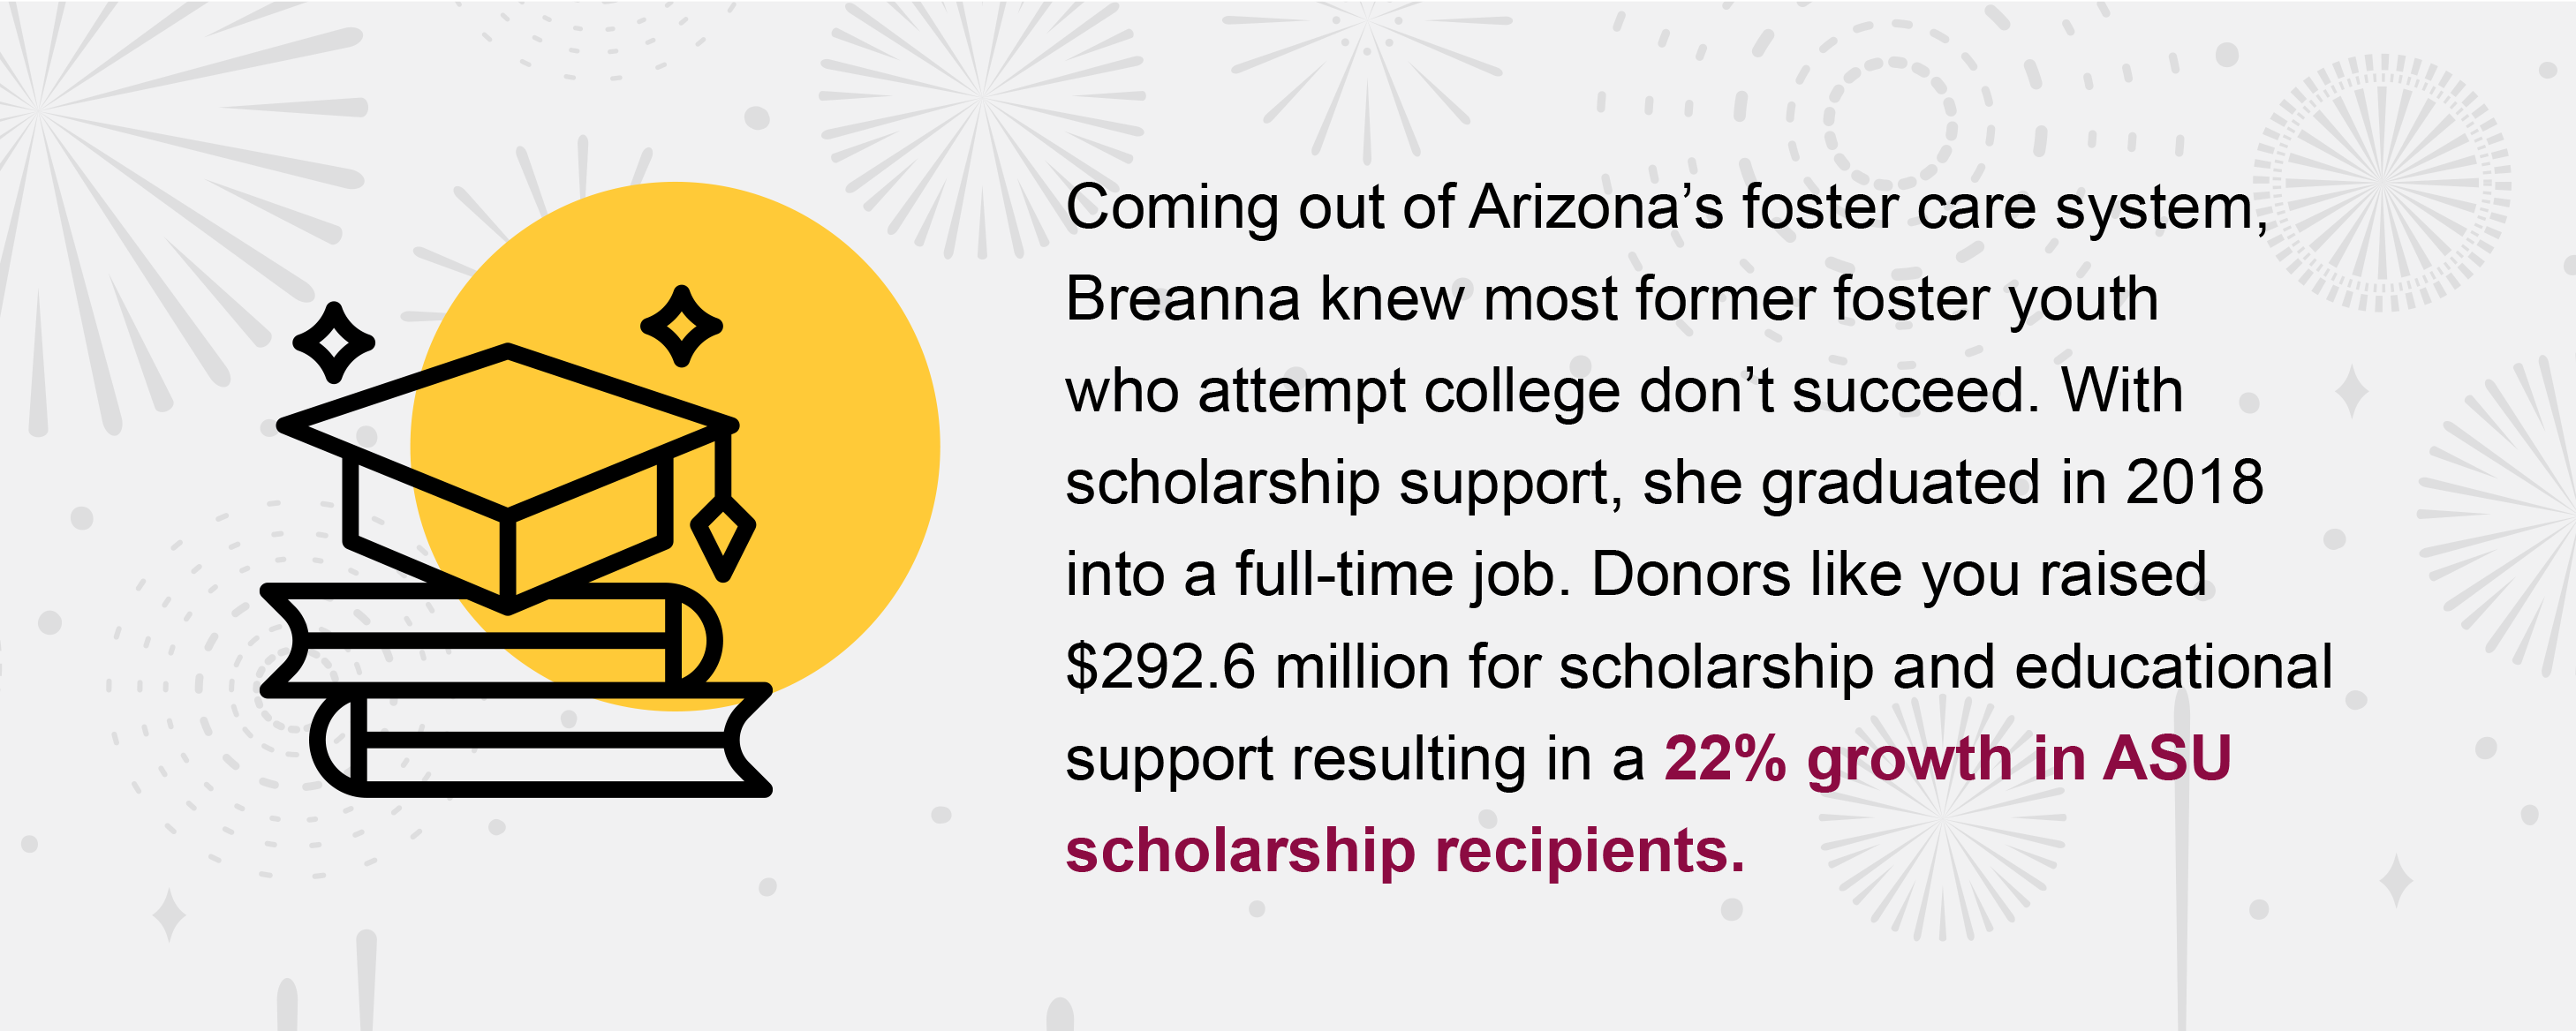 Coming out of Arizona's foster care system, Breanna knew most former foster youth who attempt college don't succeed. With scholarship support, she graduated in 2018 into a full-time job. Donors like you raised $292.6 million for scholarship and educational support resulting in a 22% growth in ASU scholarship recipients.